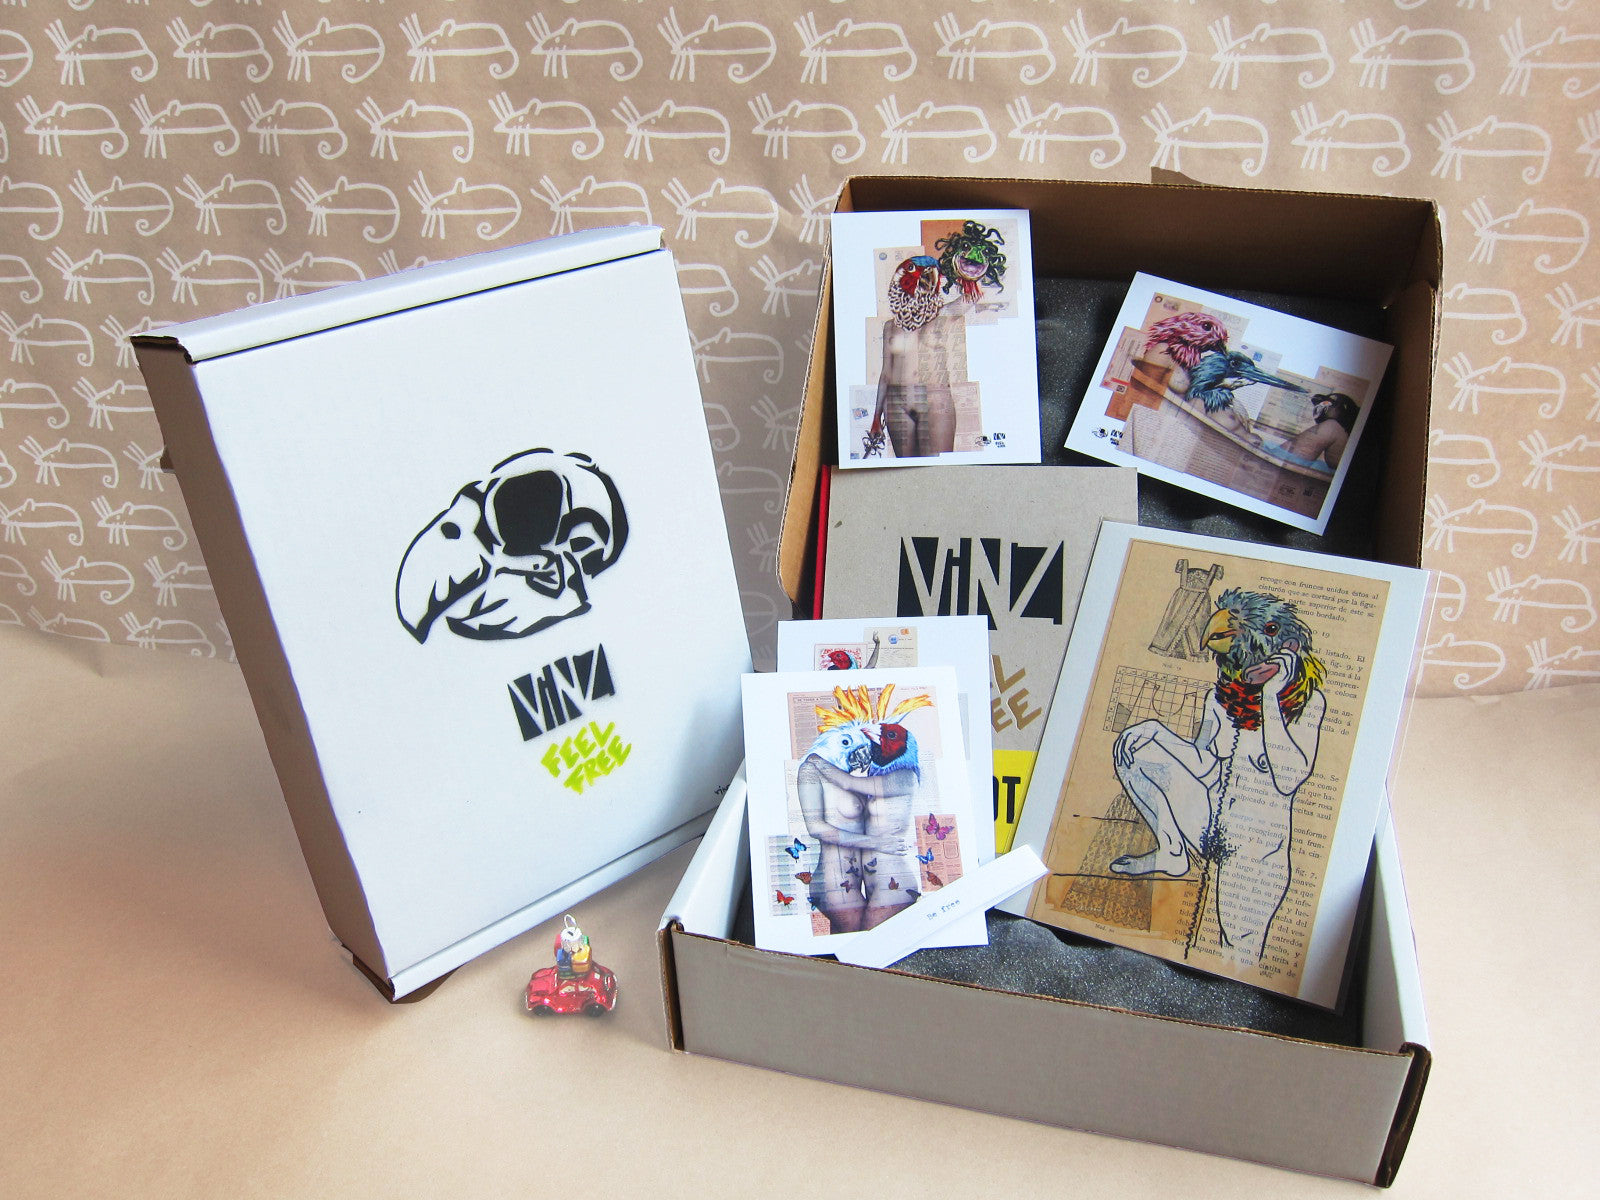 Limited Edition Vinz Feel Free Box Set (5 boxes left)